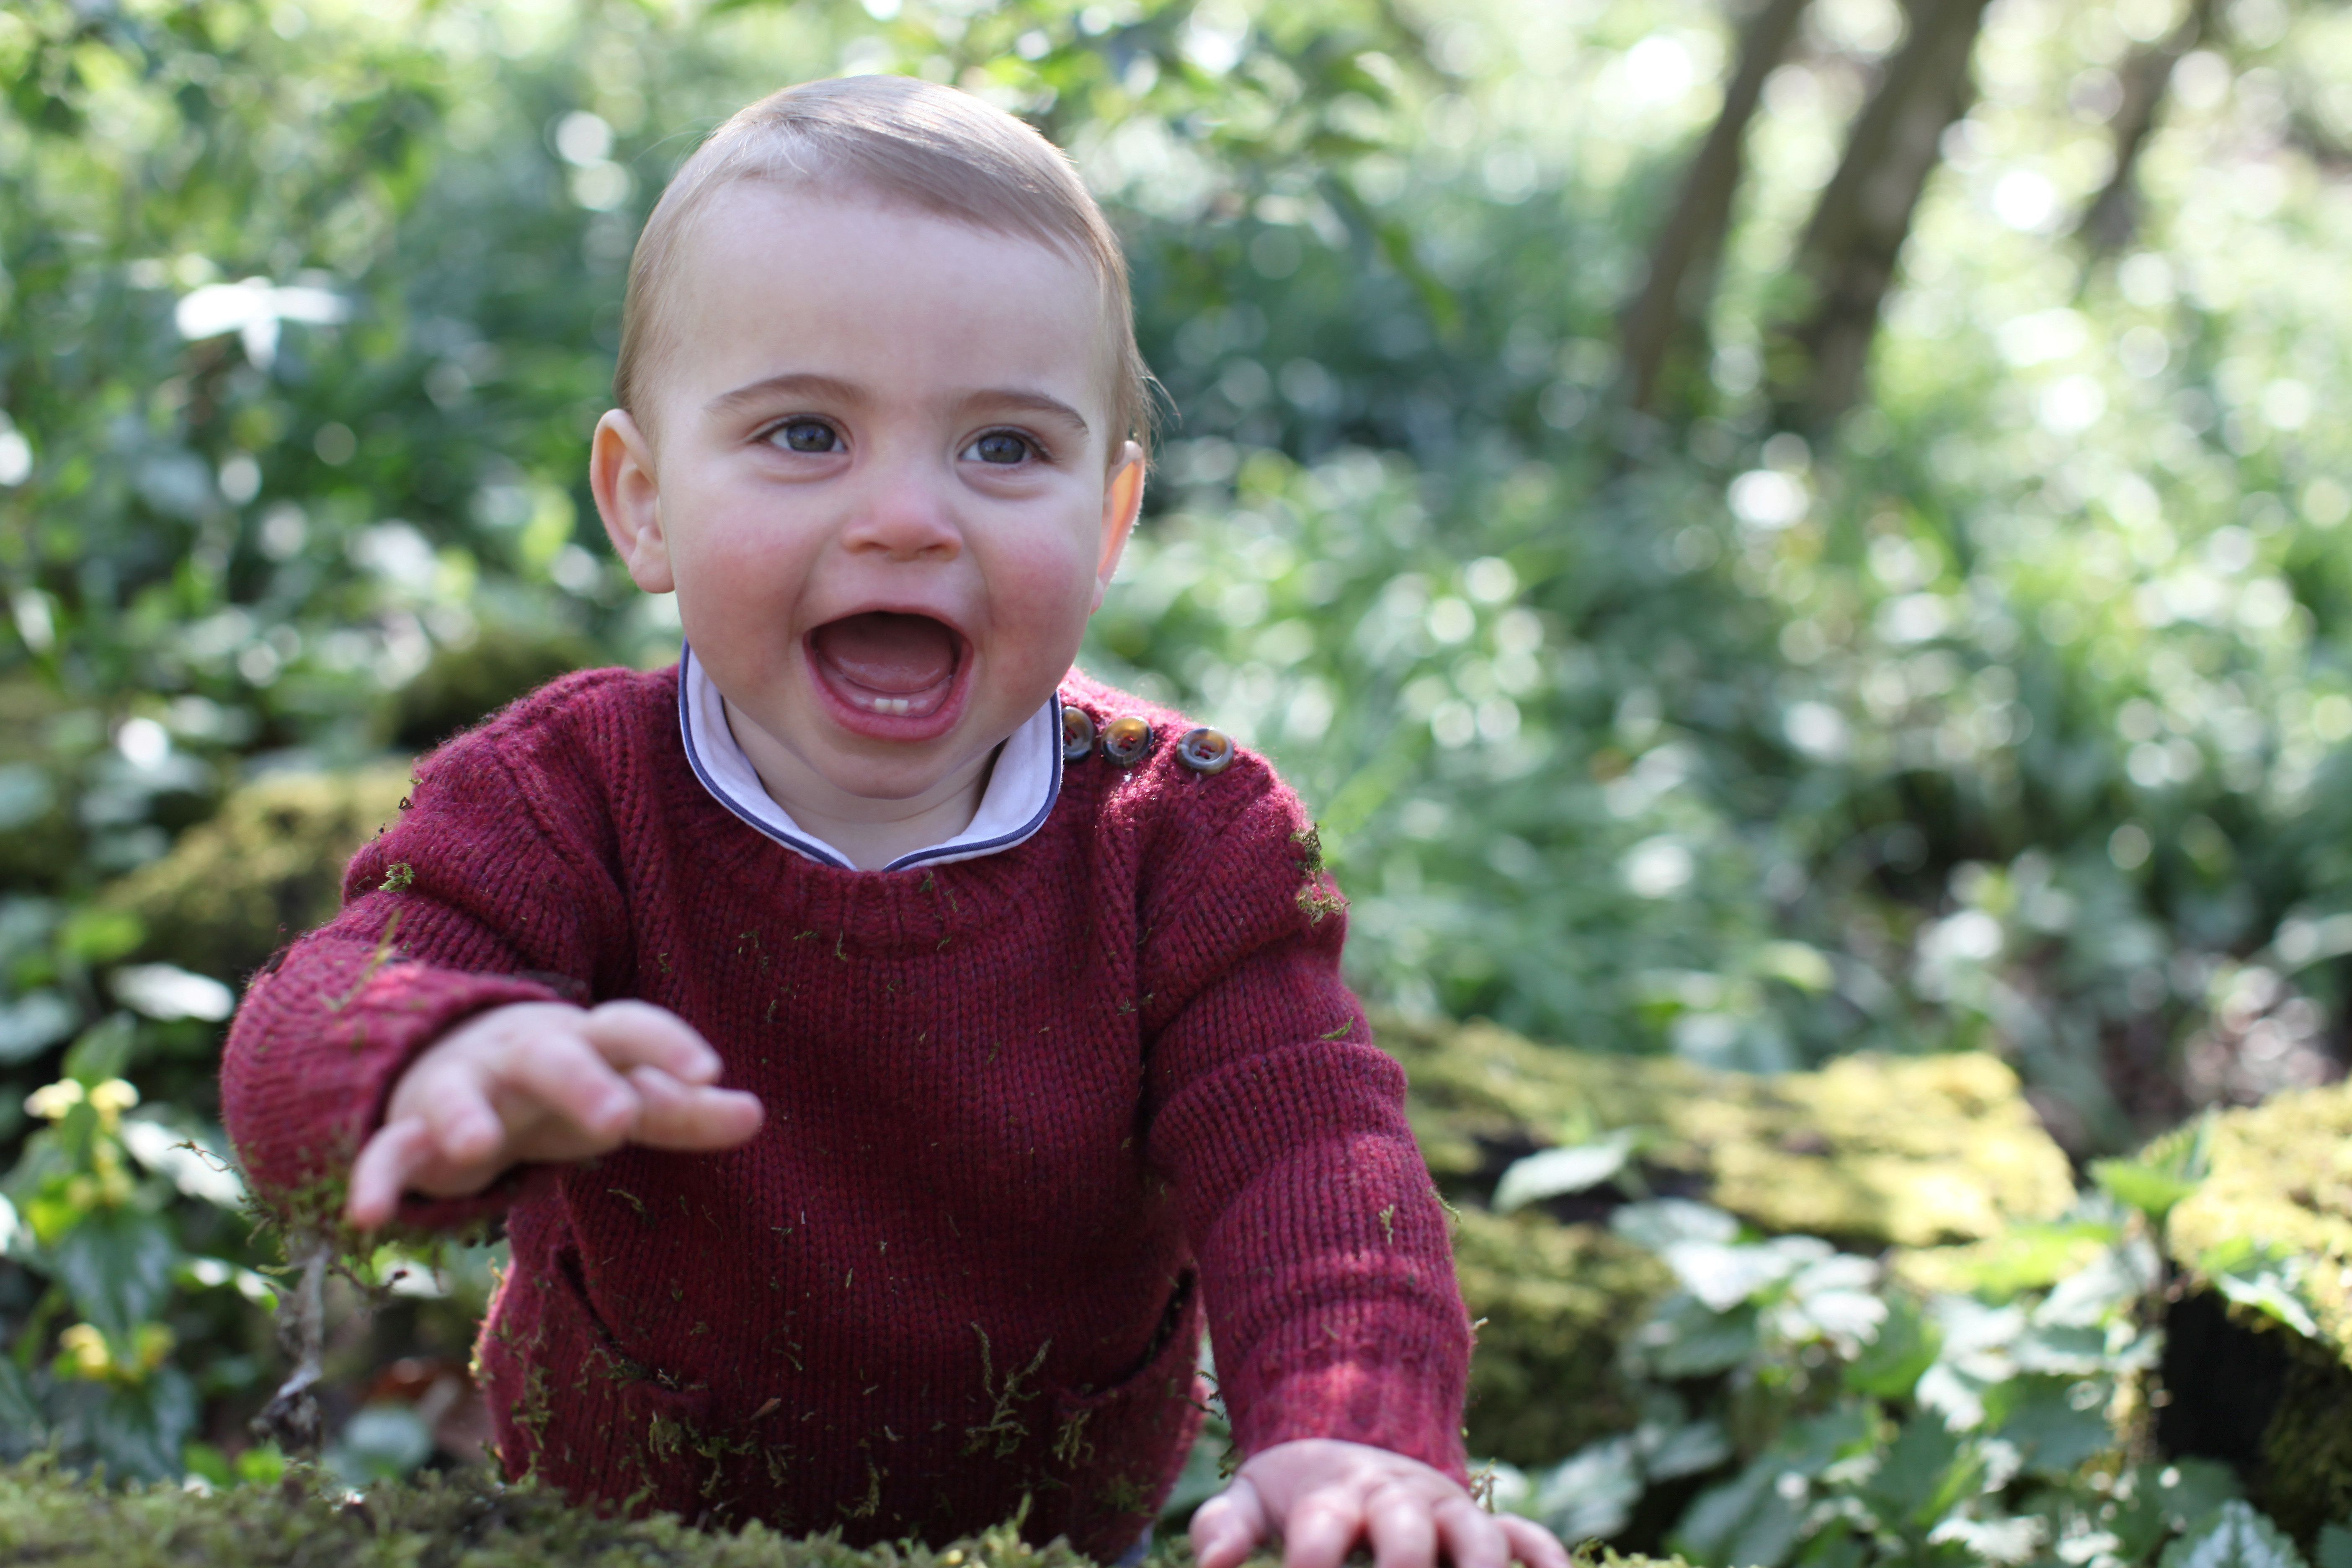 Undated handout photo of Britain's Prince Louis taken by his mother Catherine, Duchess of Cambridge, earlier this month at their home in Norfolk, Britain April 22, 2019. Duchess of Cambridge/Handout via REUTERS    THIS PICTURE IS PROVIDED BY A THIRD PARTY. NEWS EDITORIAL USE ONLY. NO COMMERCIAL USE. NO MERCHANDISING, ADVERTISING, SOUVENIRS, MEMORABILIA or COLOURABLY SIMILAR. NOT FOR USE AFTER 31 DECEMBER, 2019 WITHOUT PRIOR PERMISSION FROM KENSINGTON PALACE. NO CHARGE SHOULD BE MADE FOR THE SUPPLY, RELEASE OR PUBLICATION OF THE PHOTOGRAPH. THE PHOTOGRAPH MUST NOT BE DIGITALLY ENHANCED, MANIPULATED OR MODIFIED IN ANY MANNER OR FORM AND MUST INCLUDE ALL OF THE INDIVIDUALS IN THE PHOTOGRAPH WHEN PUBLISHED. MANDATORY CREDIT: The Duchess of Cambridge